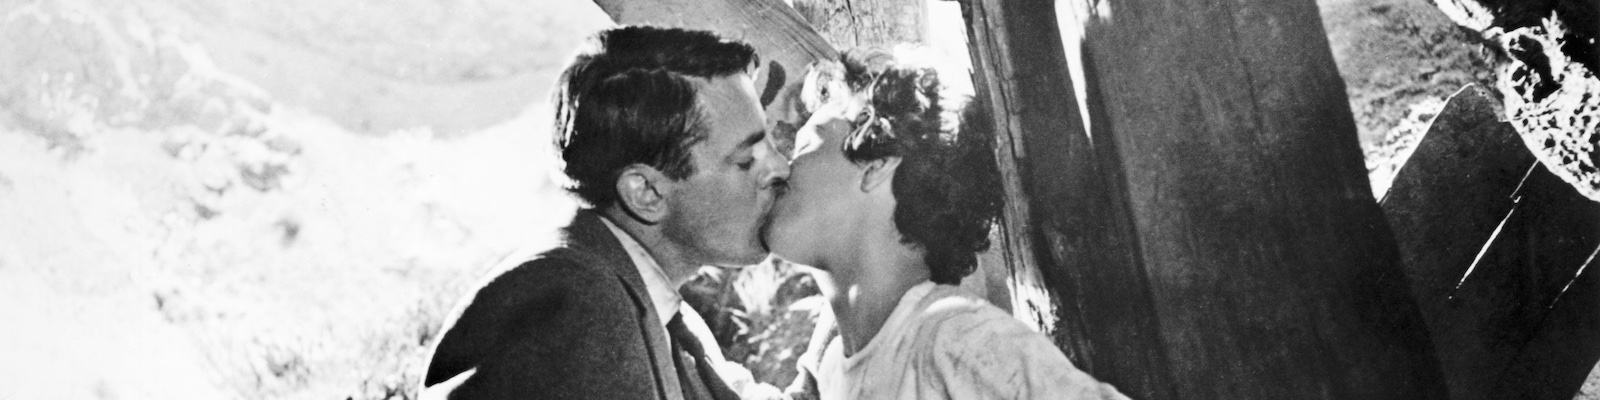 Kevin McCarthy and Dana Wynter kiss in Invasion of the Body Snatcher 1956